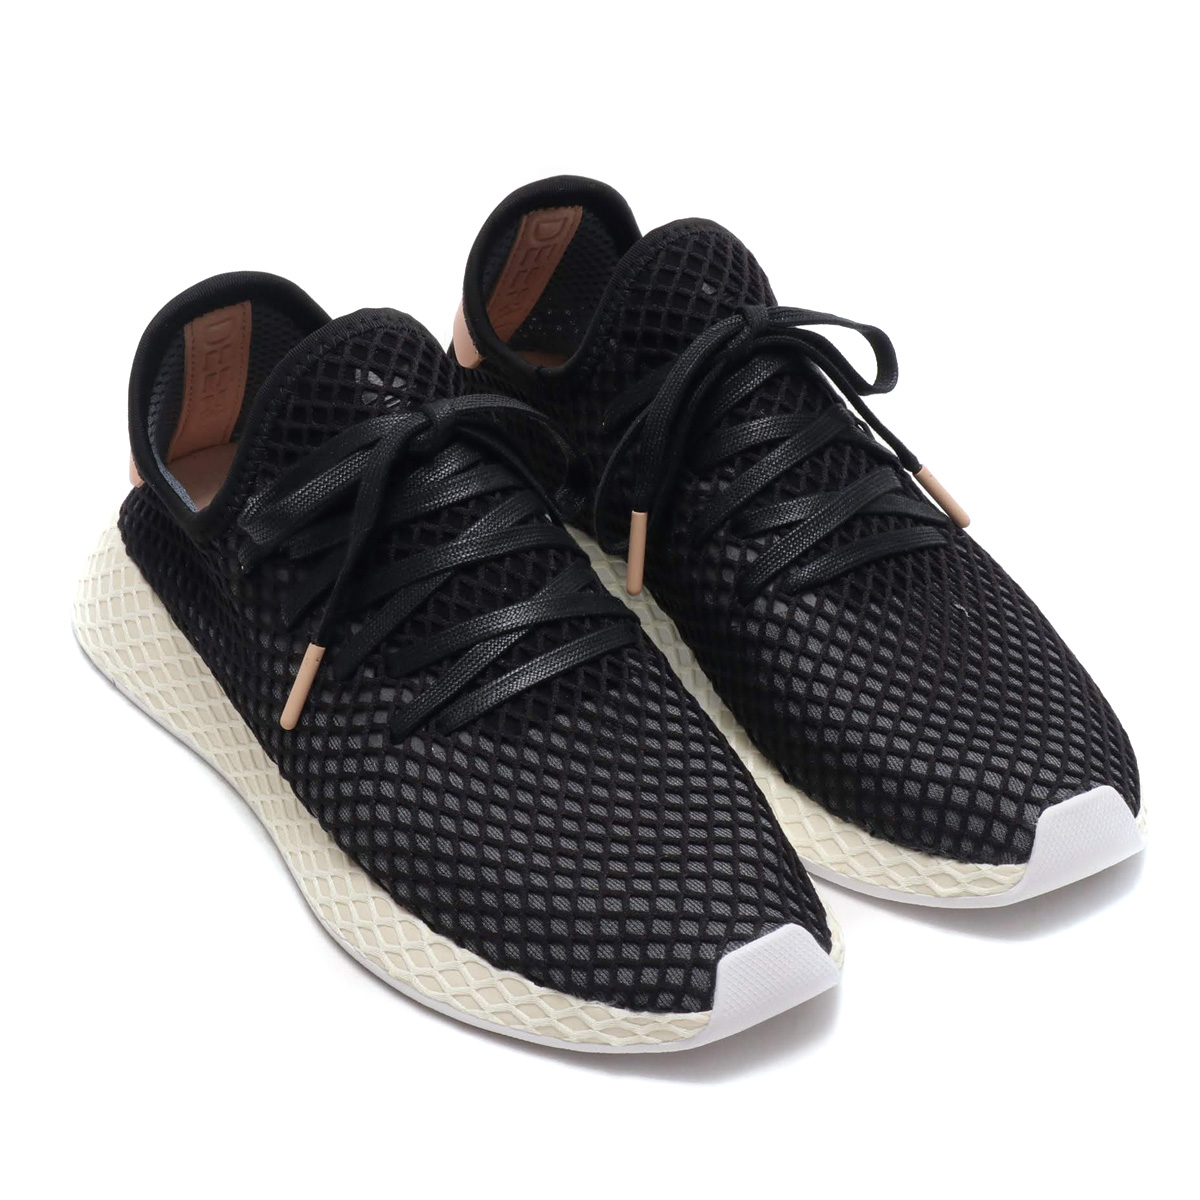 a25b355d406d adidas DEERUPT RUNNER (アディダスディラプトランナー) core black   core black   Ashe pearl  S18 18FW-I